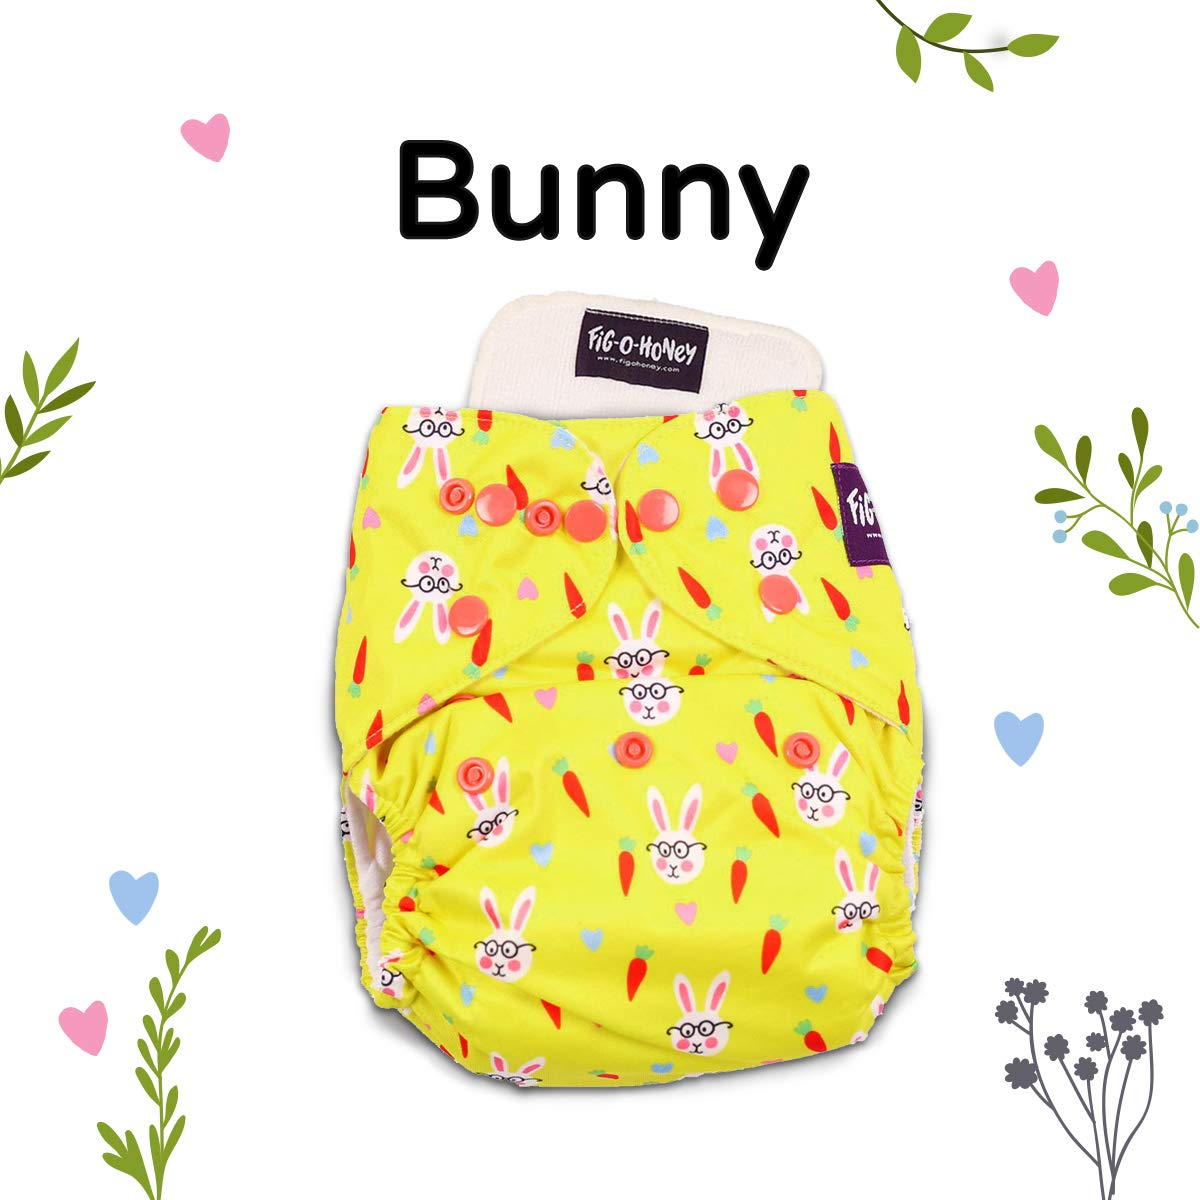 Fig-O-Honey Reusable Cloth Diaper One Size (5 kg to 15 kg), Includes 1  Insert (Bunny)